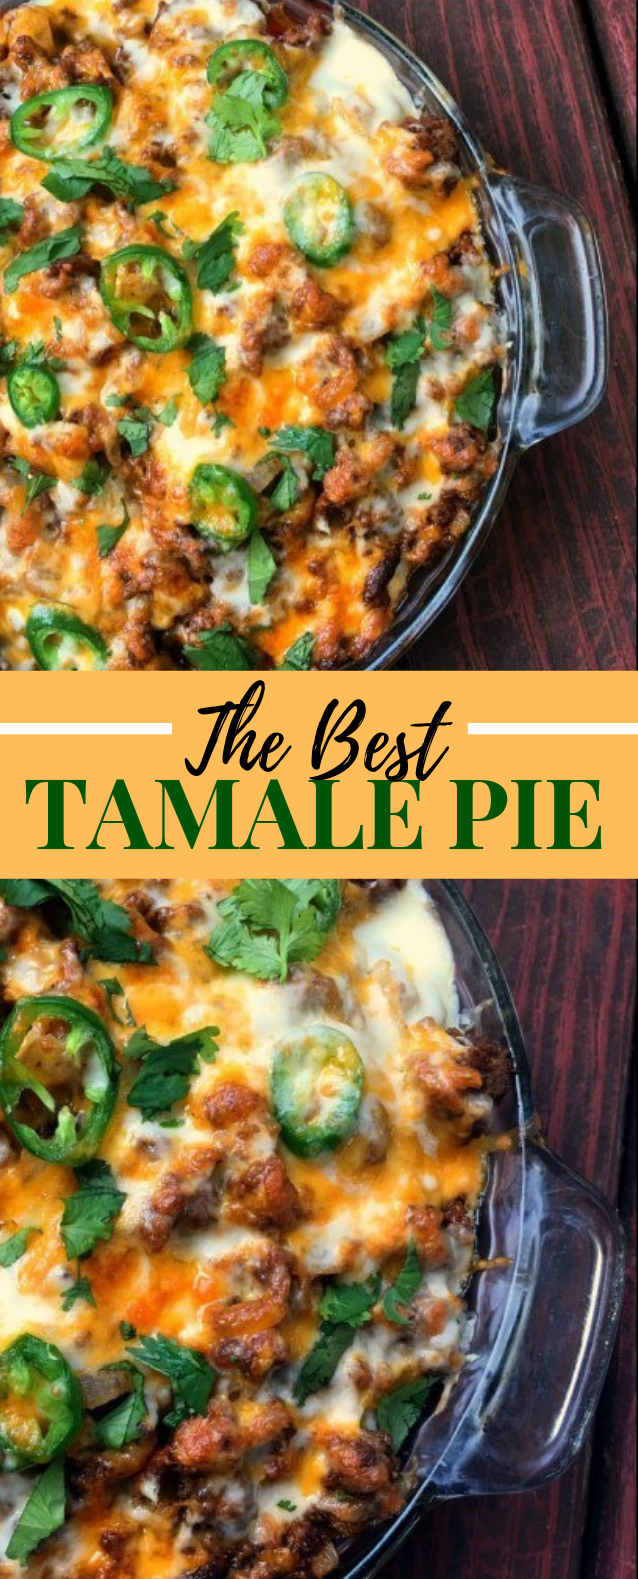 Tamale Pie #dinner #mexican